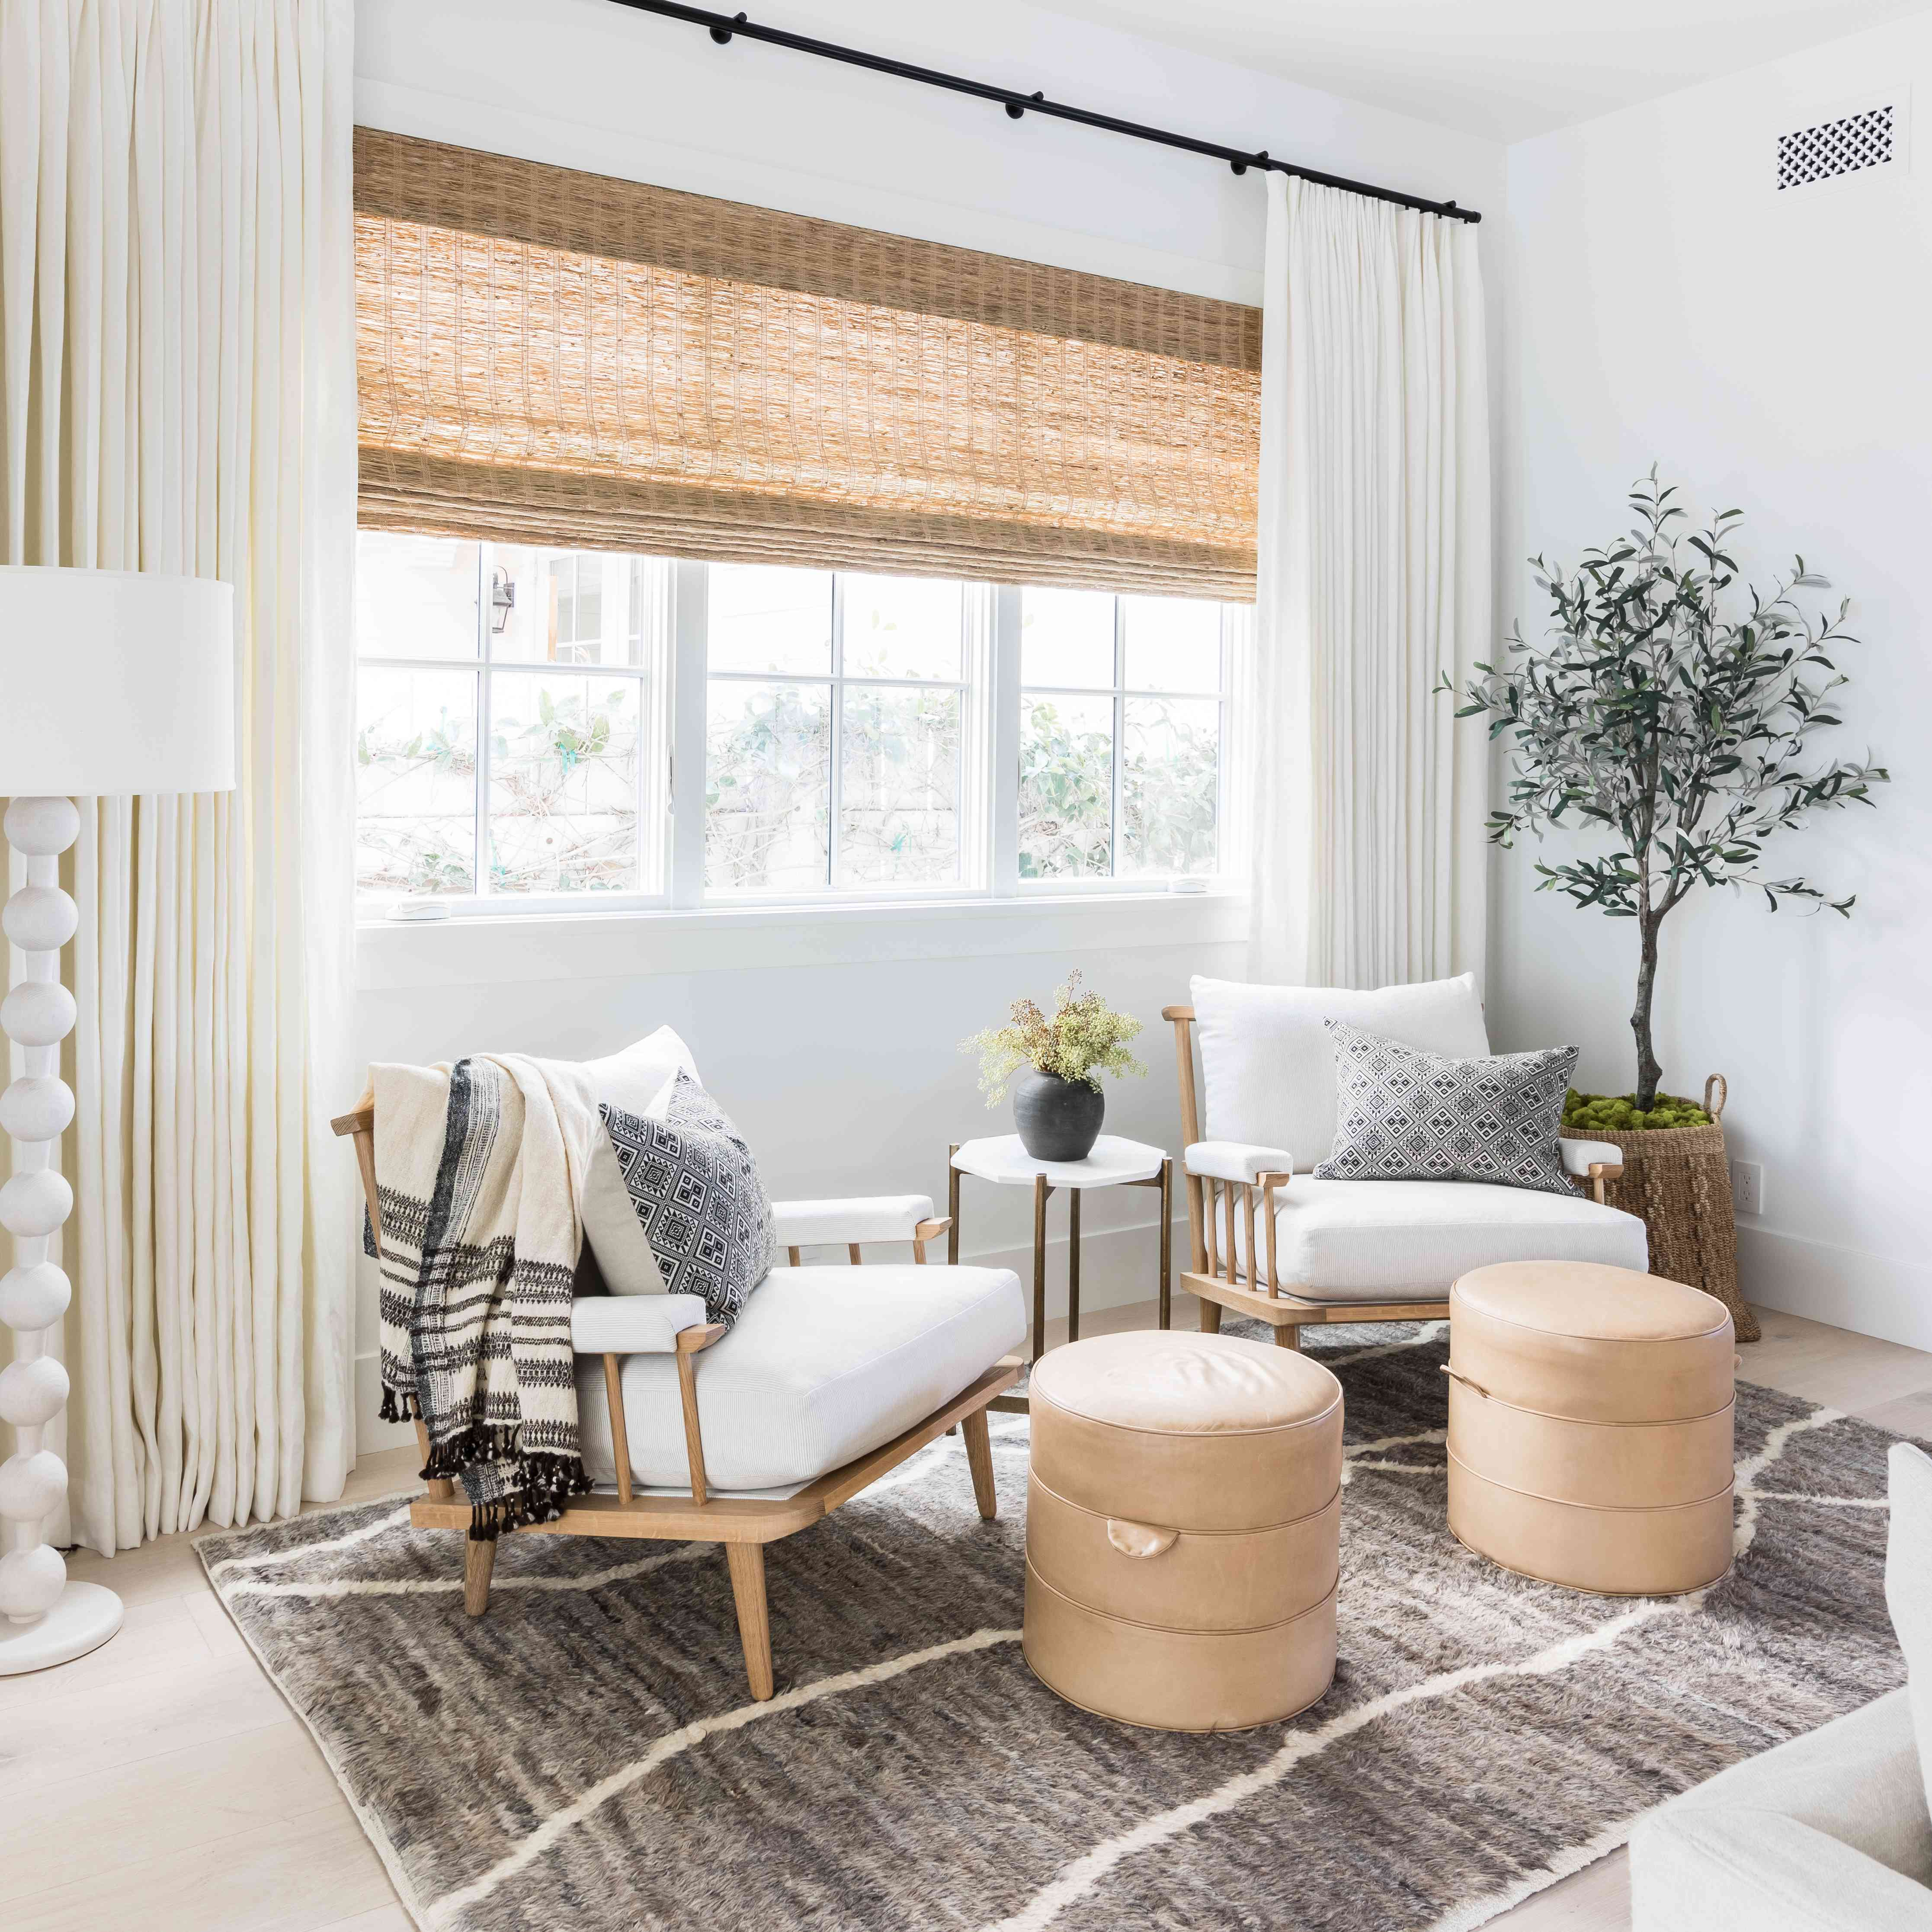 12 Window Treatment Ideas That Work for Any Room